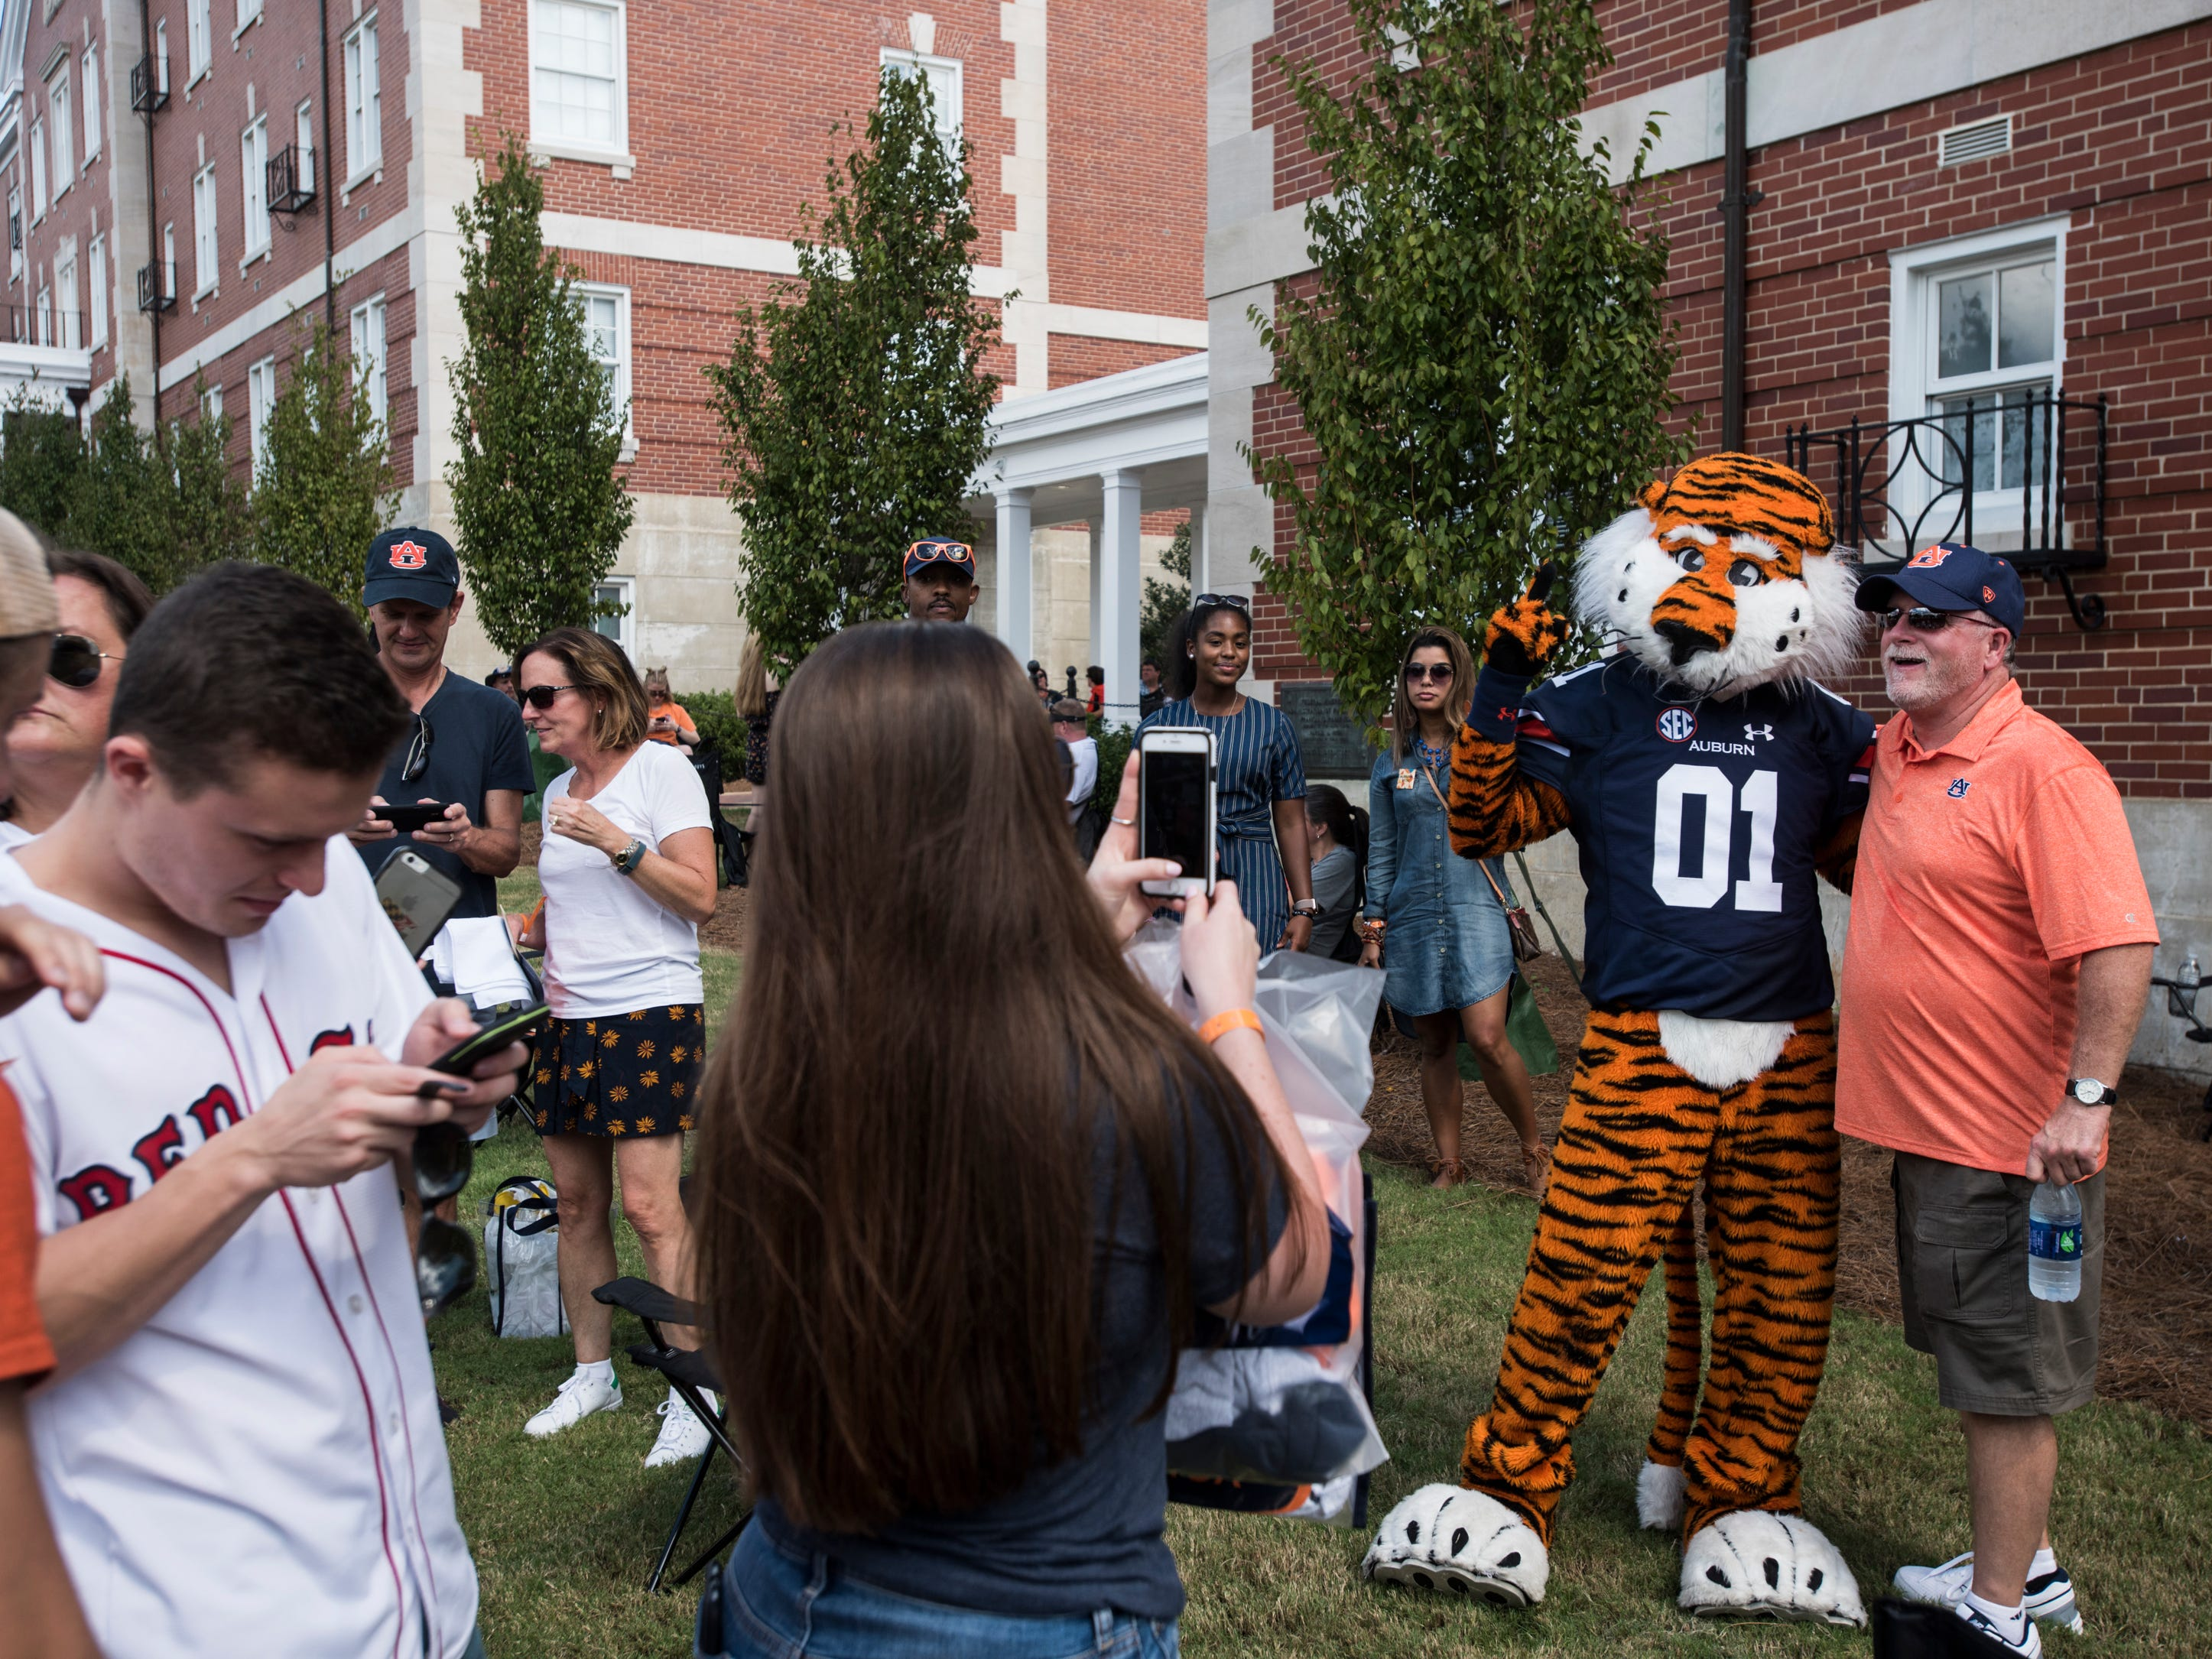 Fans take pictures with Auburn mascot, Aubie, outside Jordan-Hare Stadium in Auburn, Ala., on Saturday, Sept. 29, 2018.